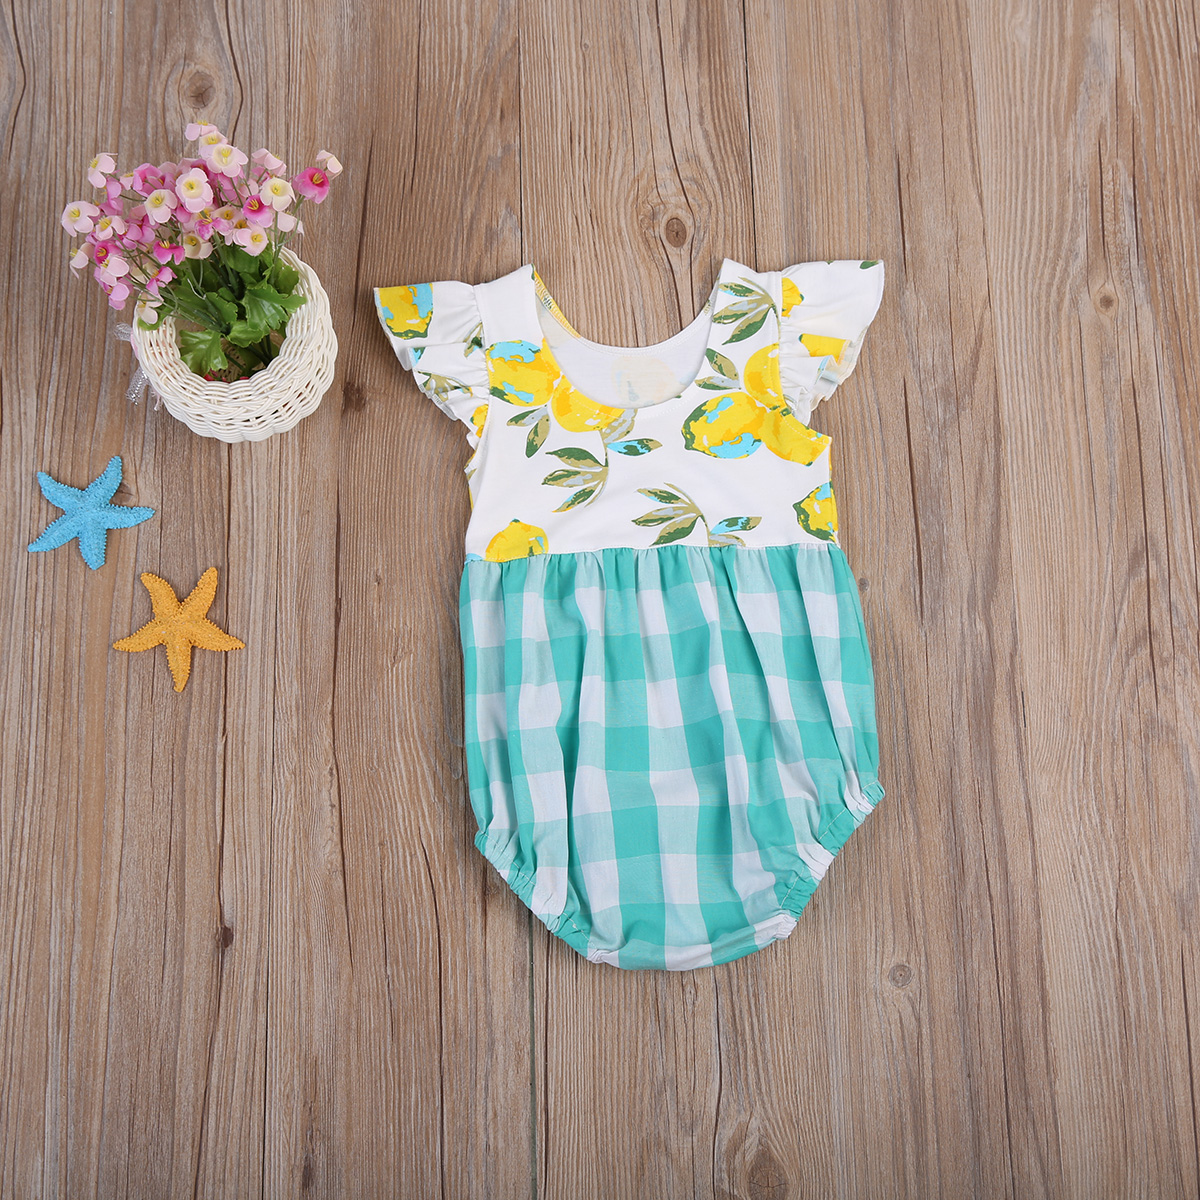 329df89fd0d Cute Toddler Baby Kids Girls Puffy Floral Lemon Romper Plaid Jumpsuit  Playsuit Sunsuit Clothes-in Rompers from Mother   Kids on Aliexpress.com